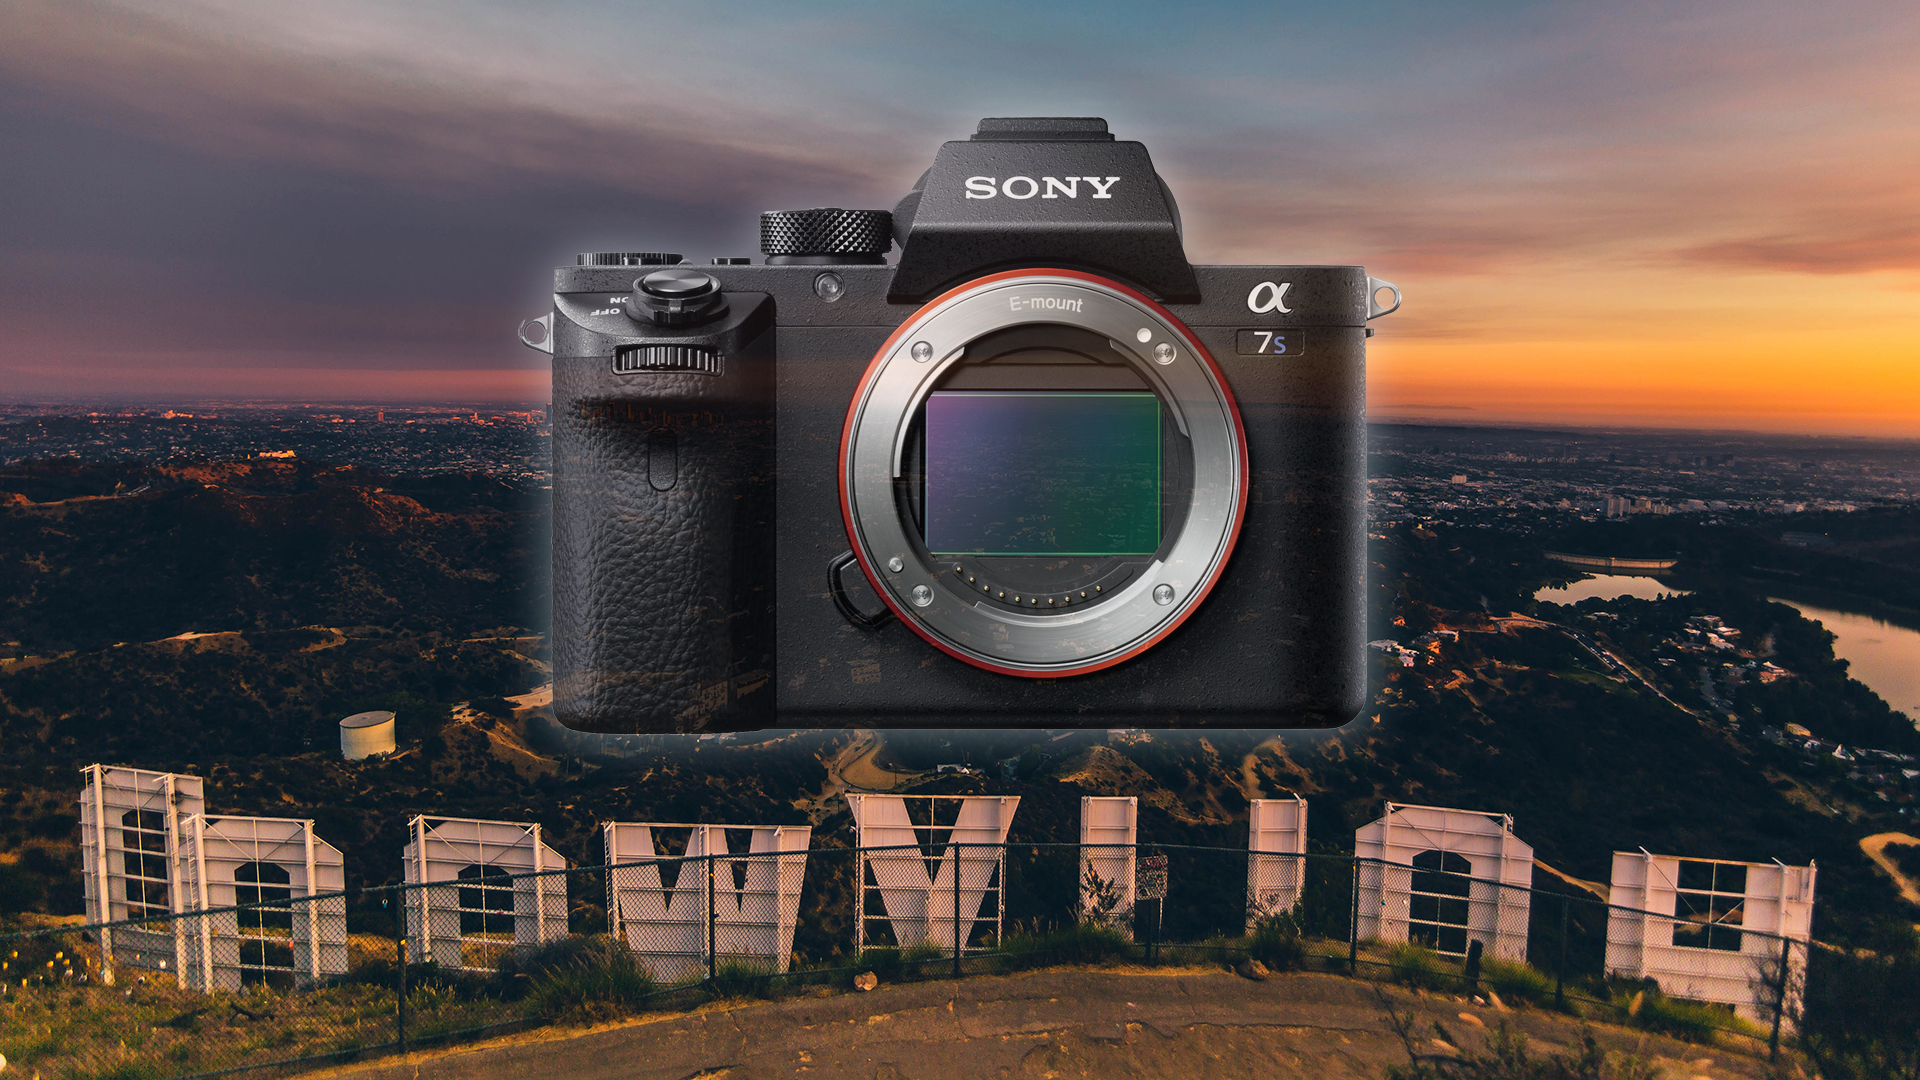 Sony Full Frame Lenses >> This Hollywood Movie Was Shot Entirely on a Sony a7S II Mirrorless Camera | cinema5D